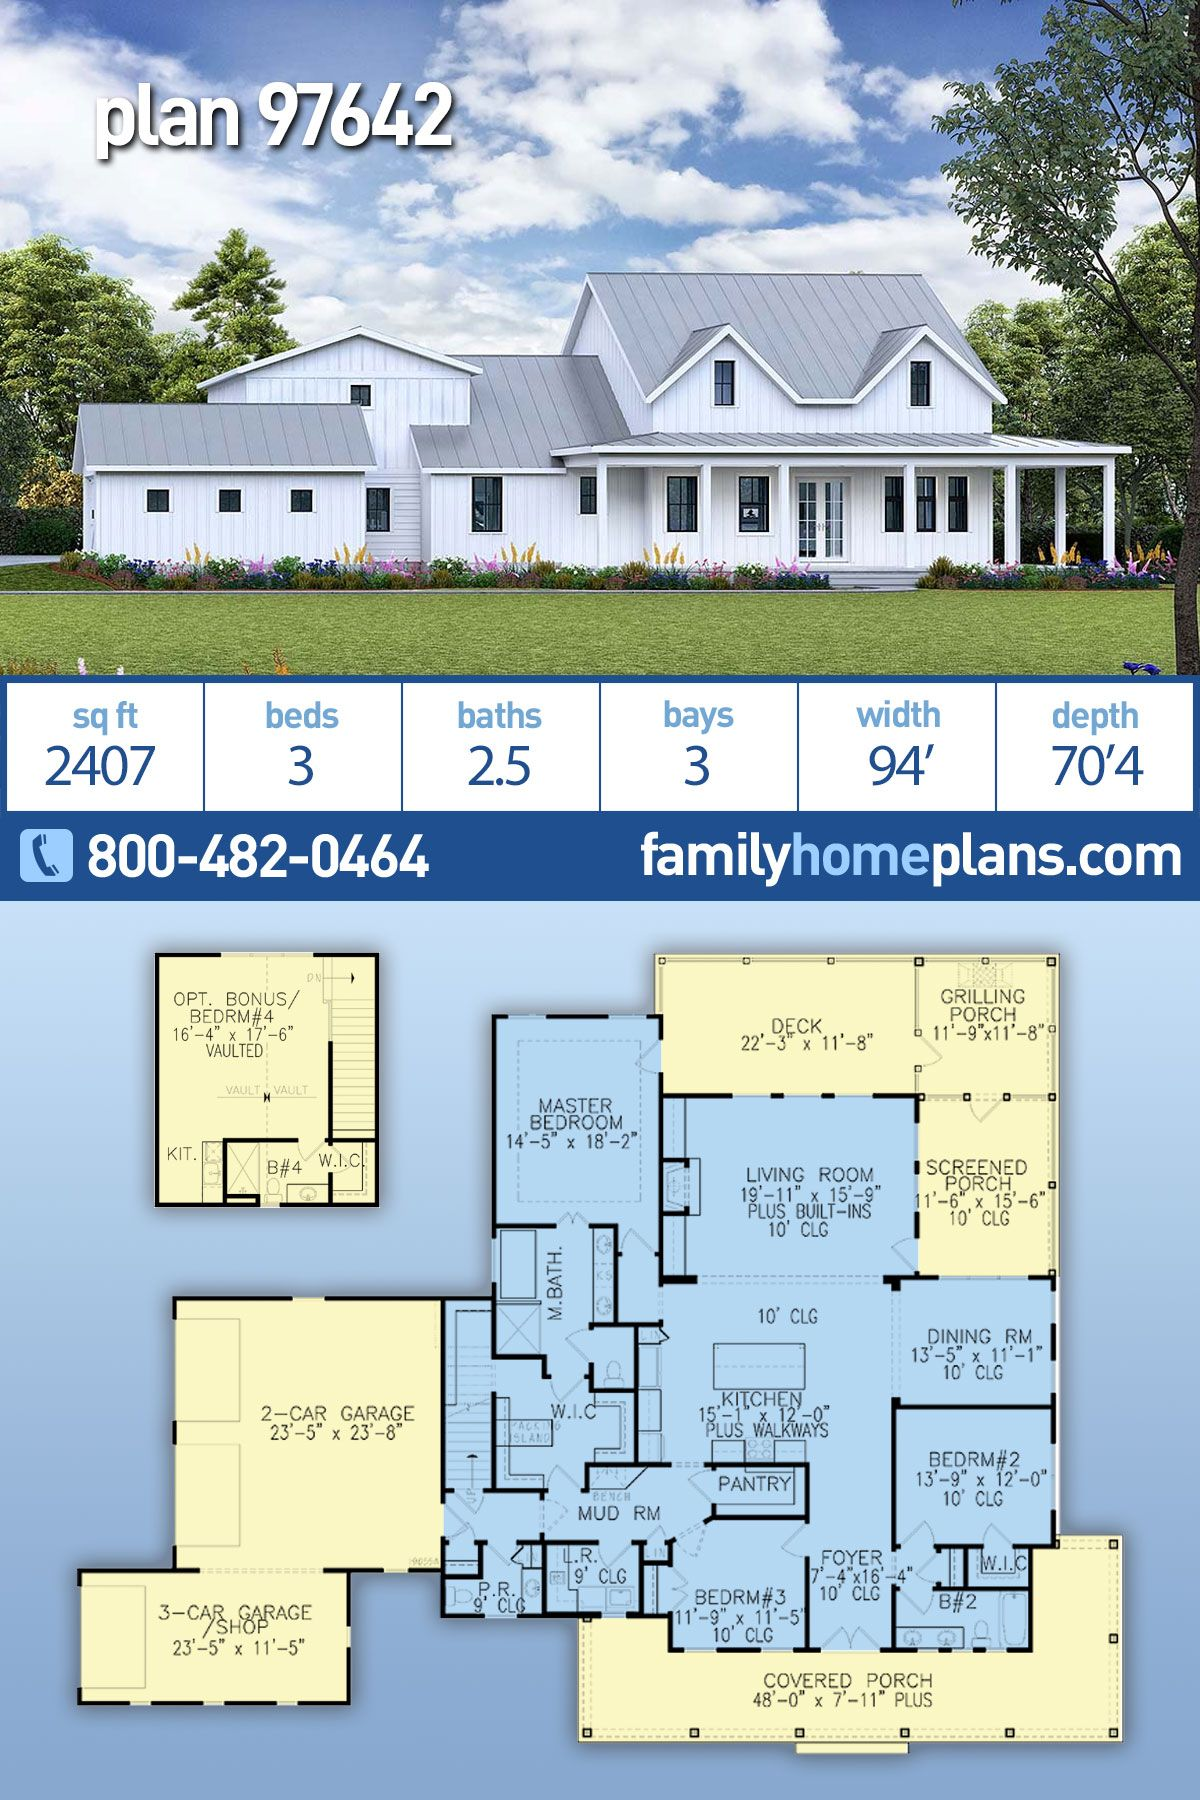 Southern Style House Plan 97642 With 3 Bed 3 Bath 3 Car Garage In 2020 House Plans Family House Plans Southern Style Home